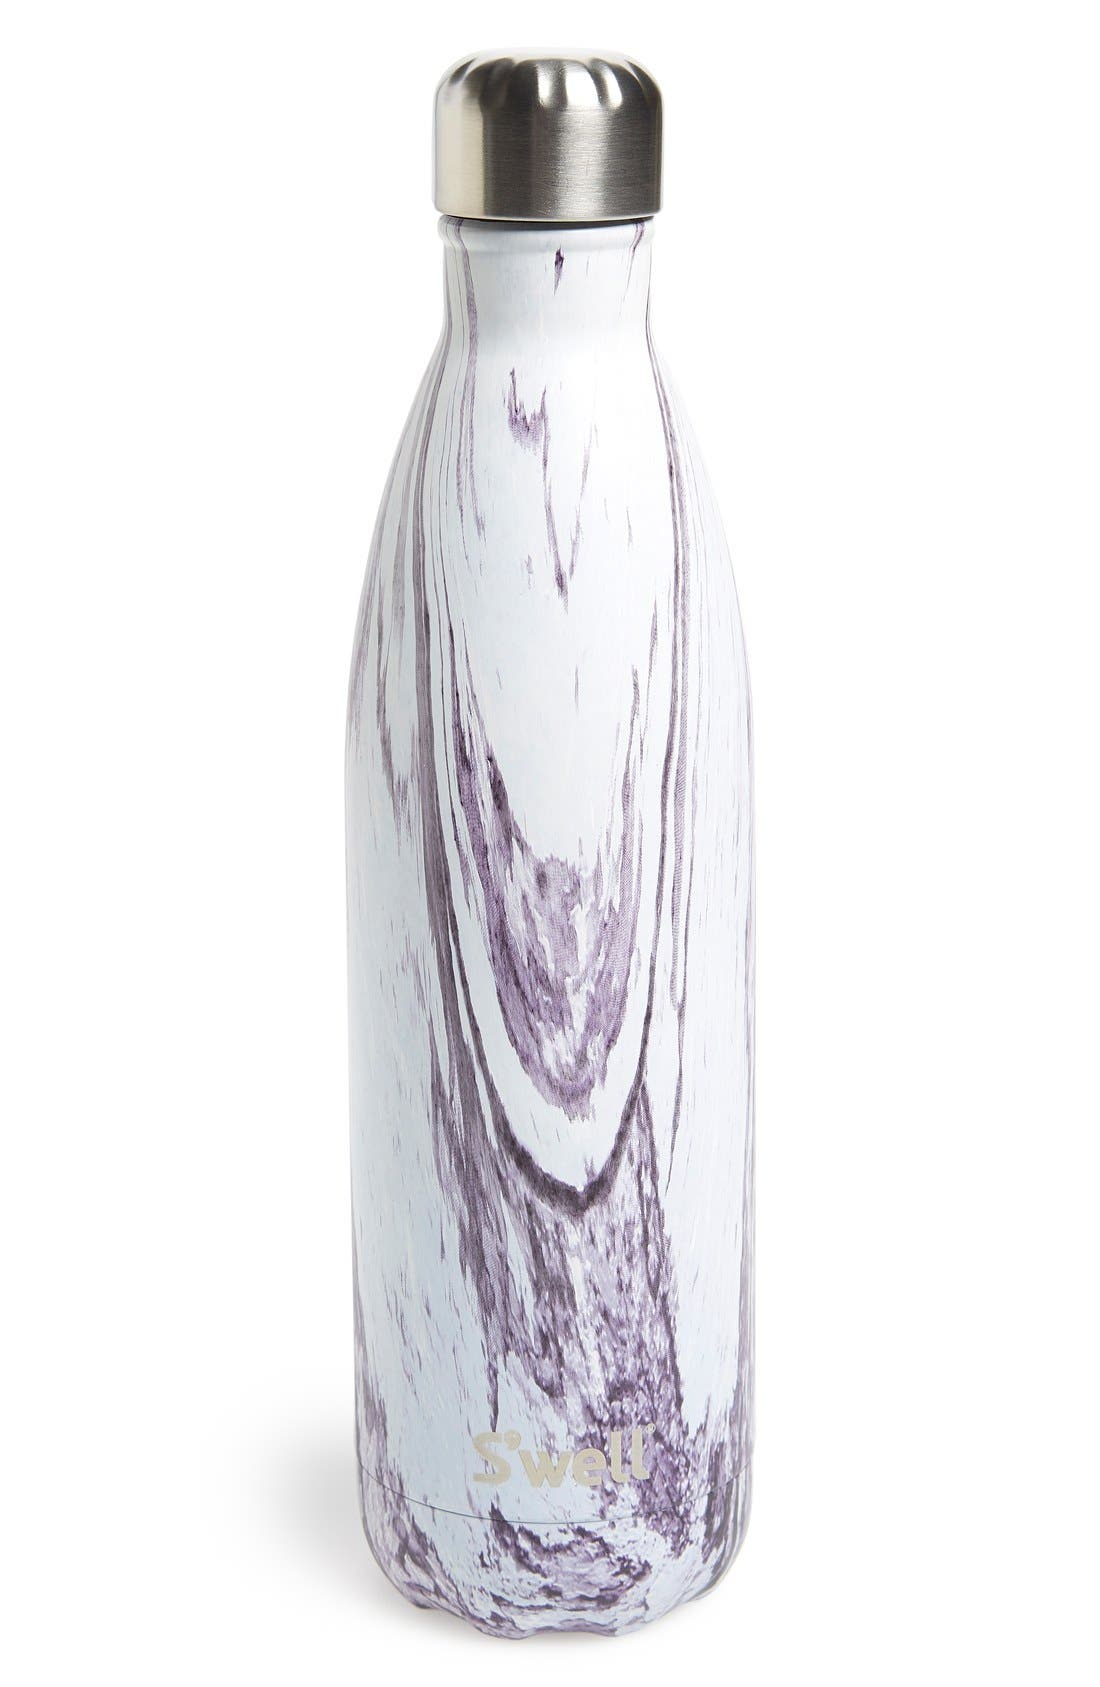 Main Image - S'well 'The Wood Collection - Lily Wood' Insulated Stainless Steel Water Bottle